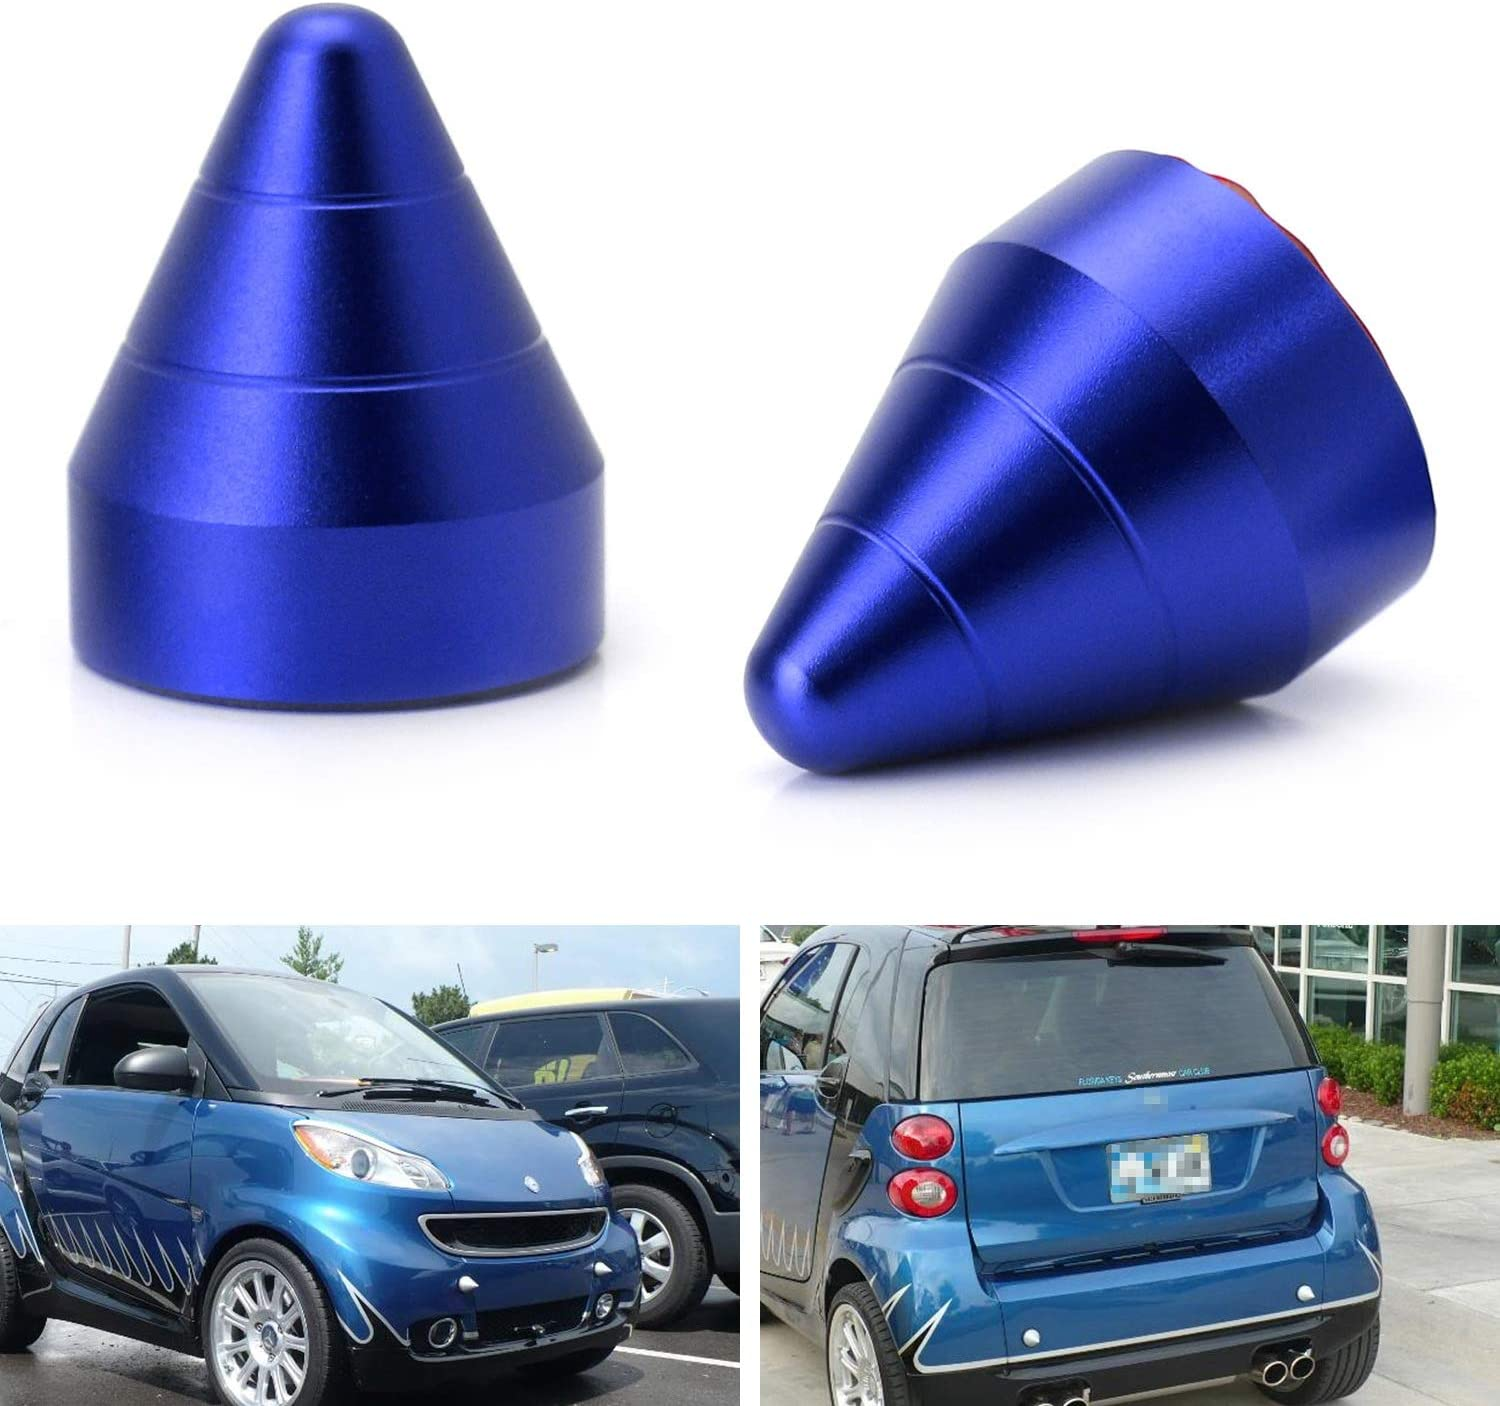 2pcs Red LicBund Front or Rear Bumper Guard Protector Collision Aluminum Tail Cone Tuning Parts Spikes Guards for Mercedze Benz Smart Fortwo 2007-2015